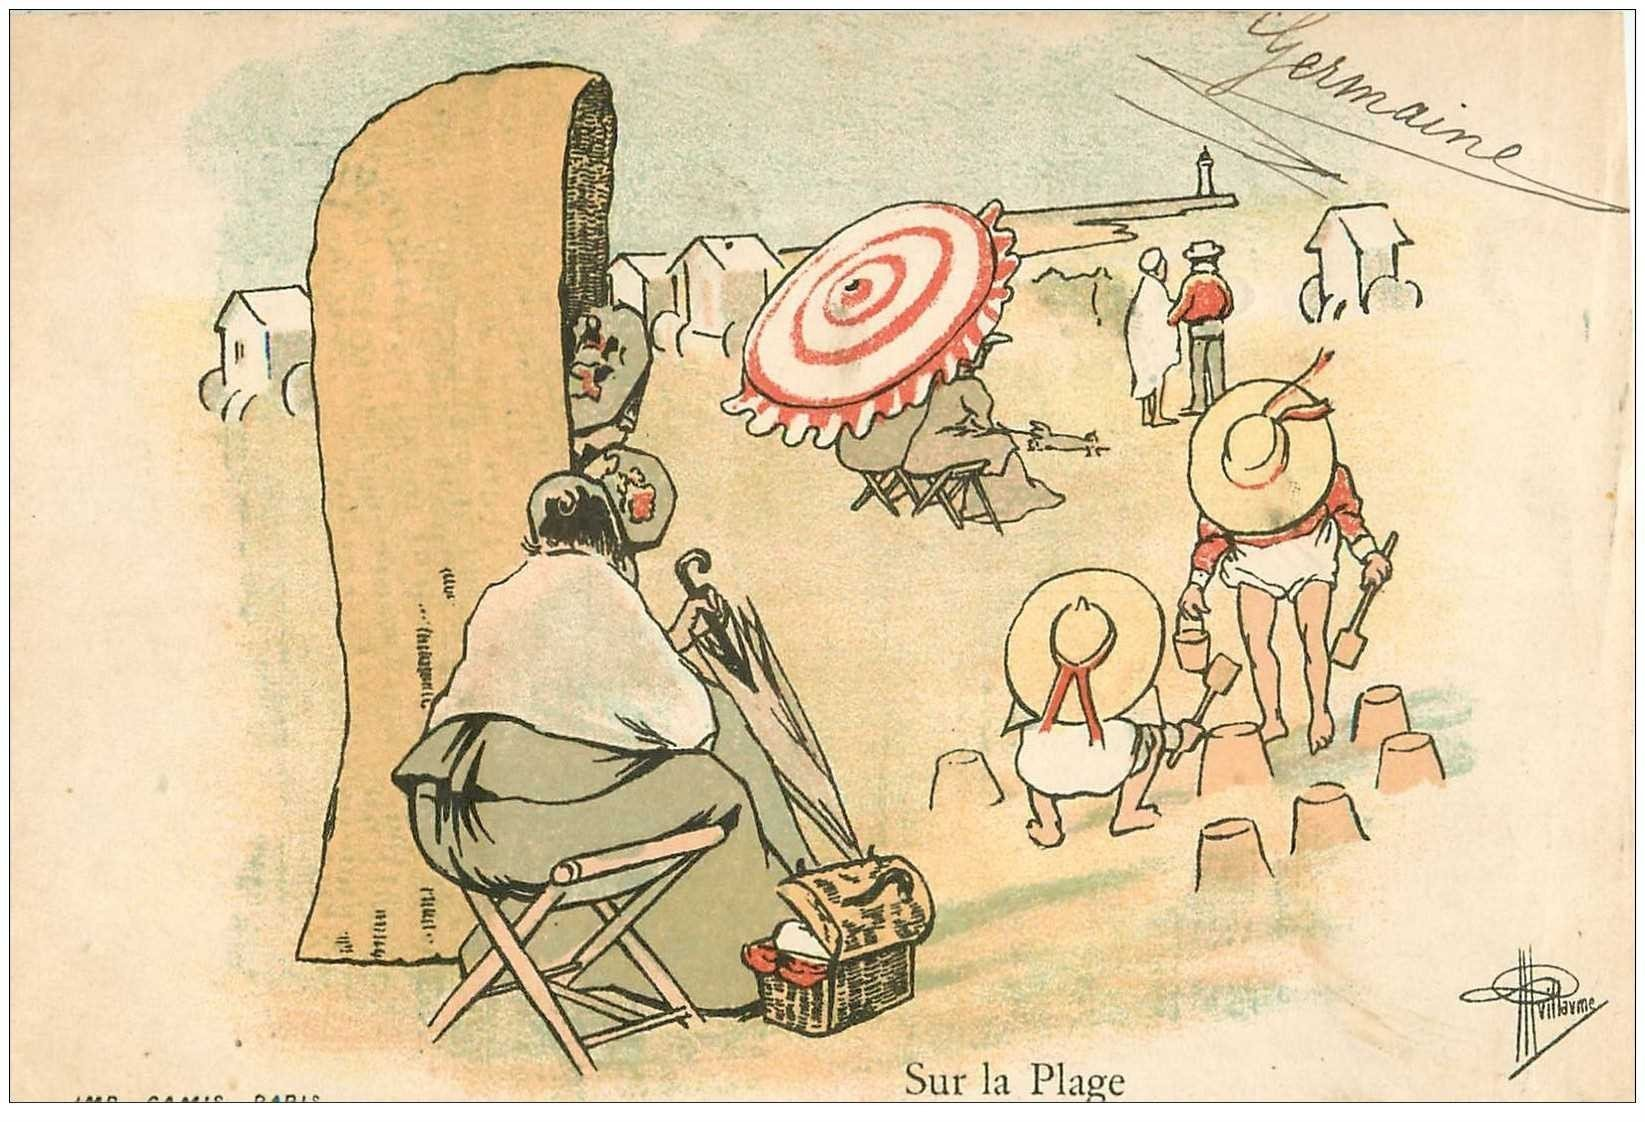 carte postale ancienne Carte Postale Fantaisie Illustrateur GUILLAUME Timbre 1 centime sur la Plage